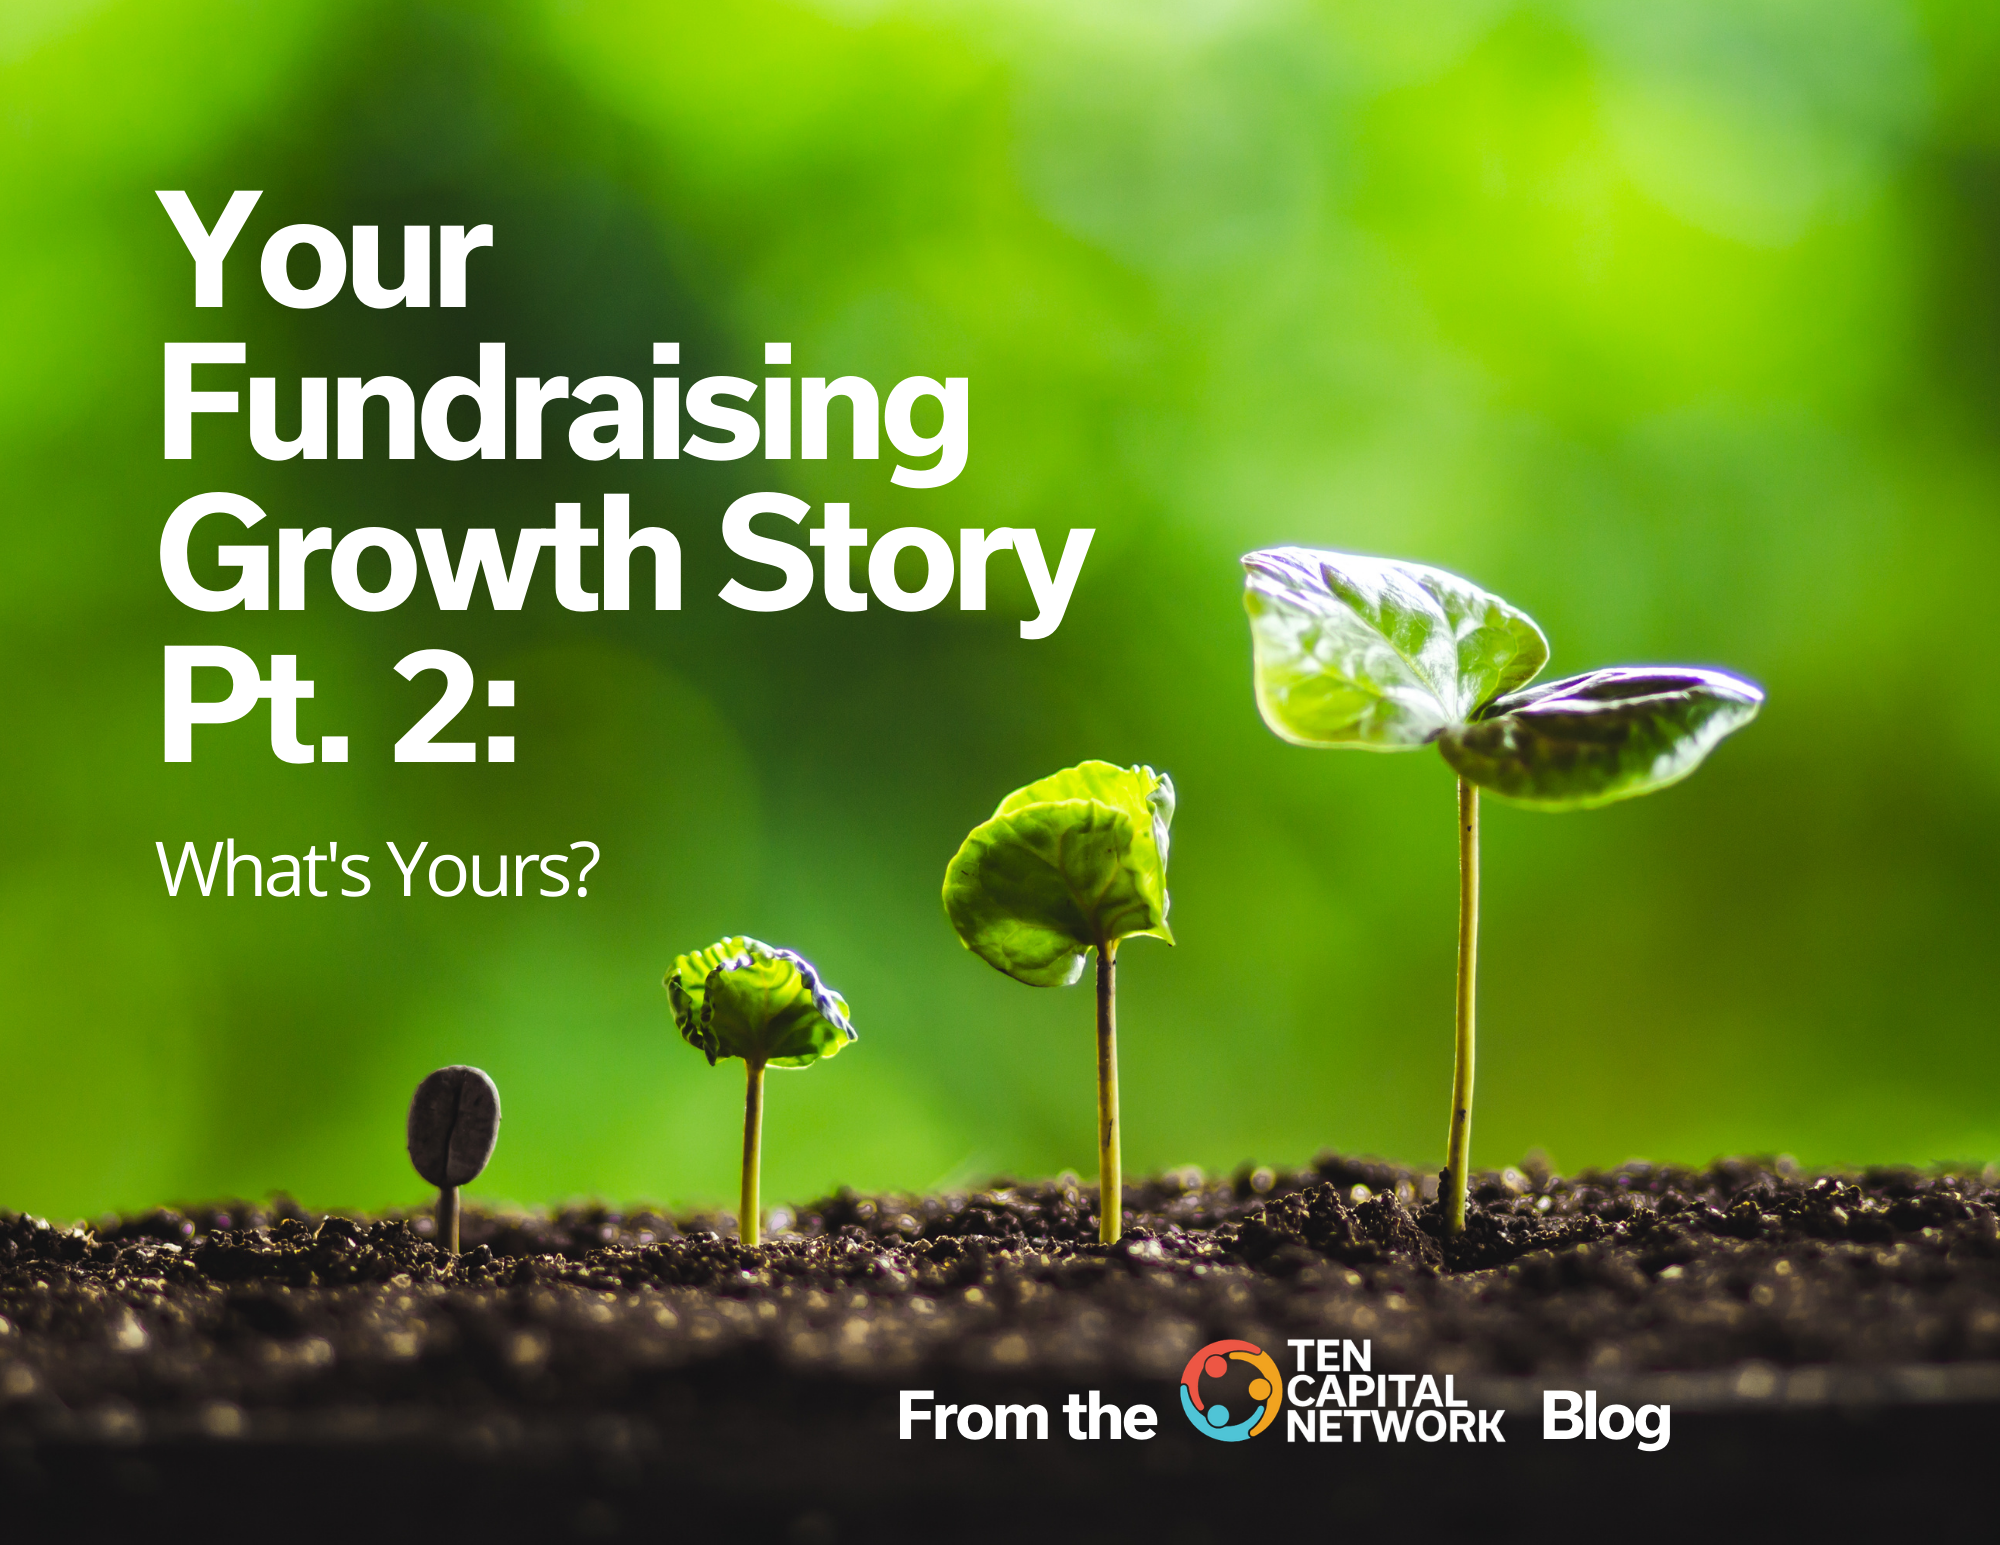 Your Fundraising Growth Story